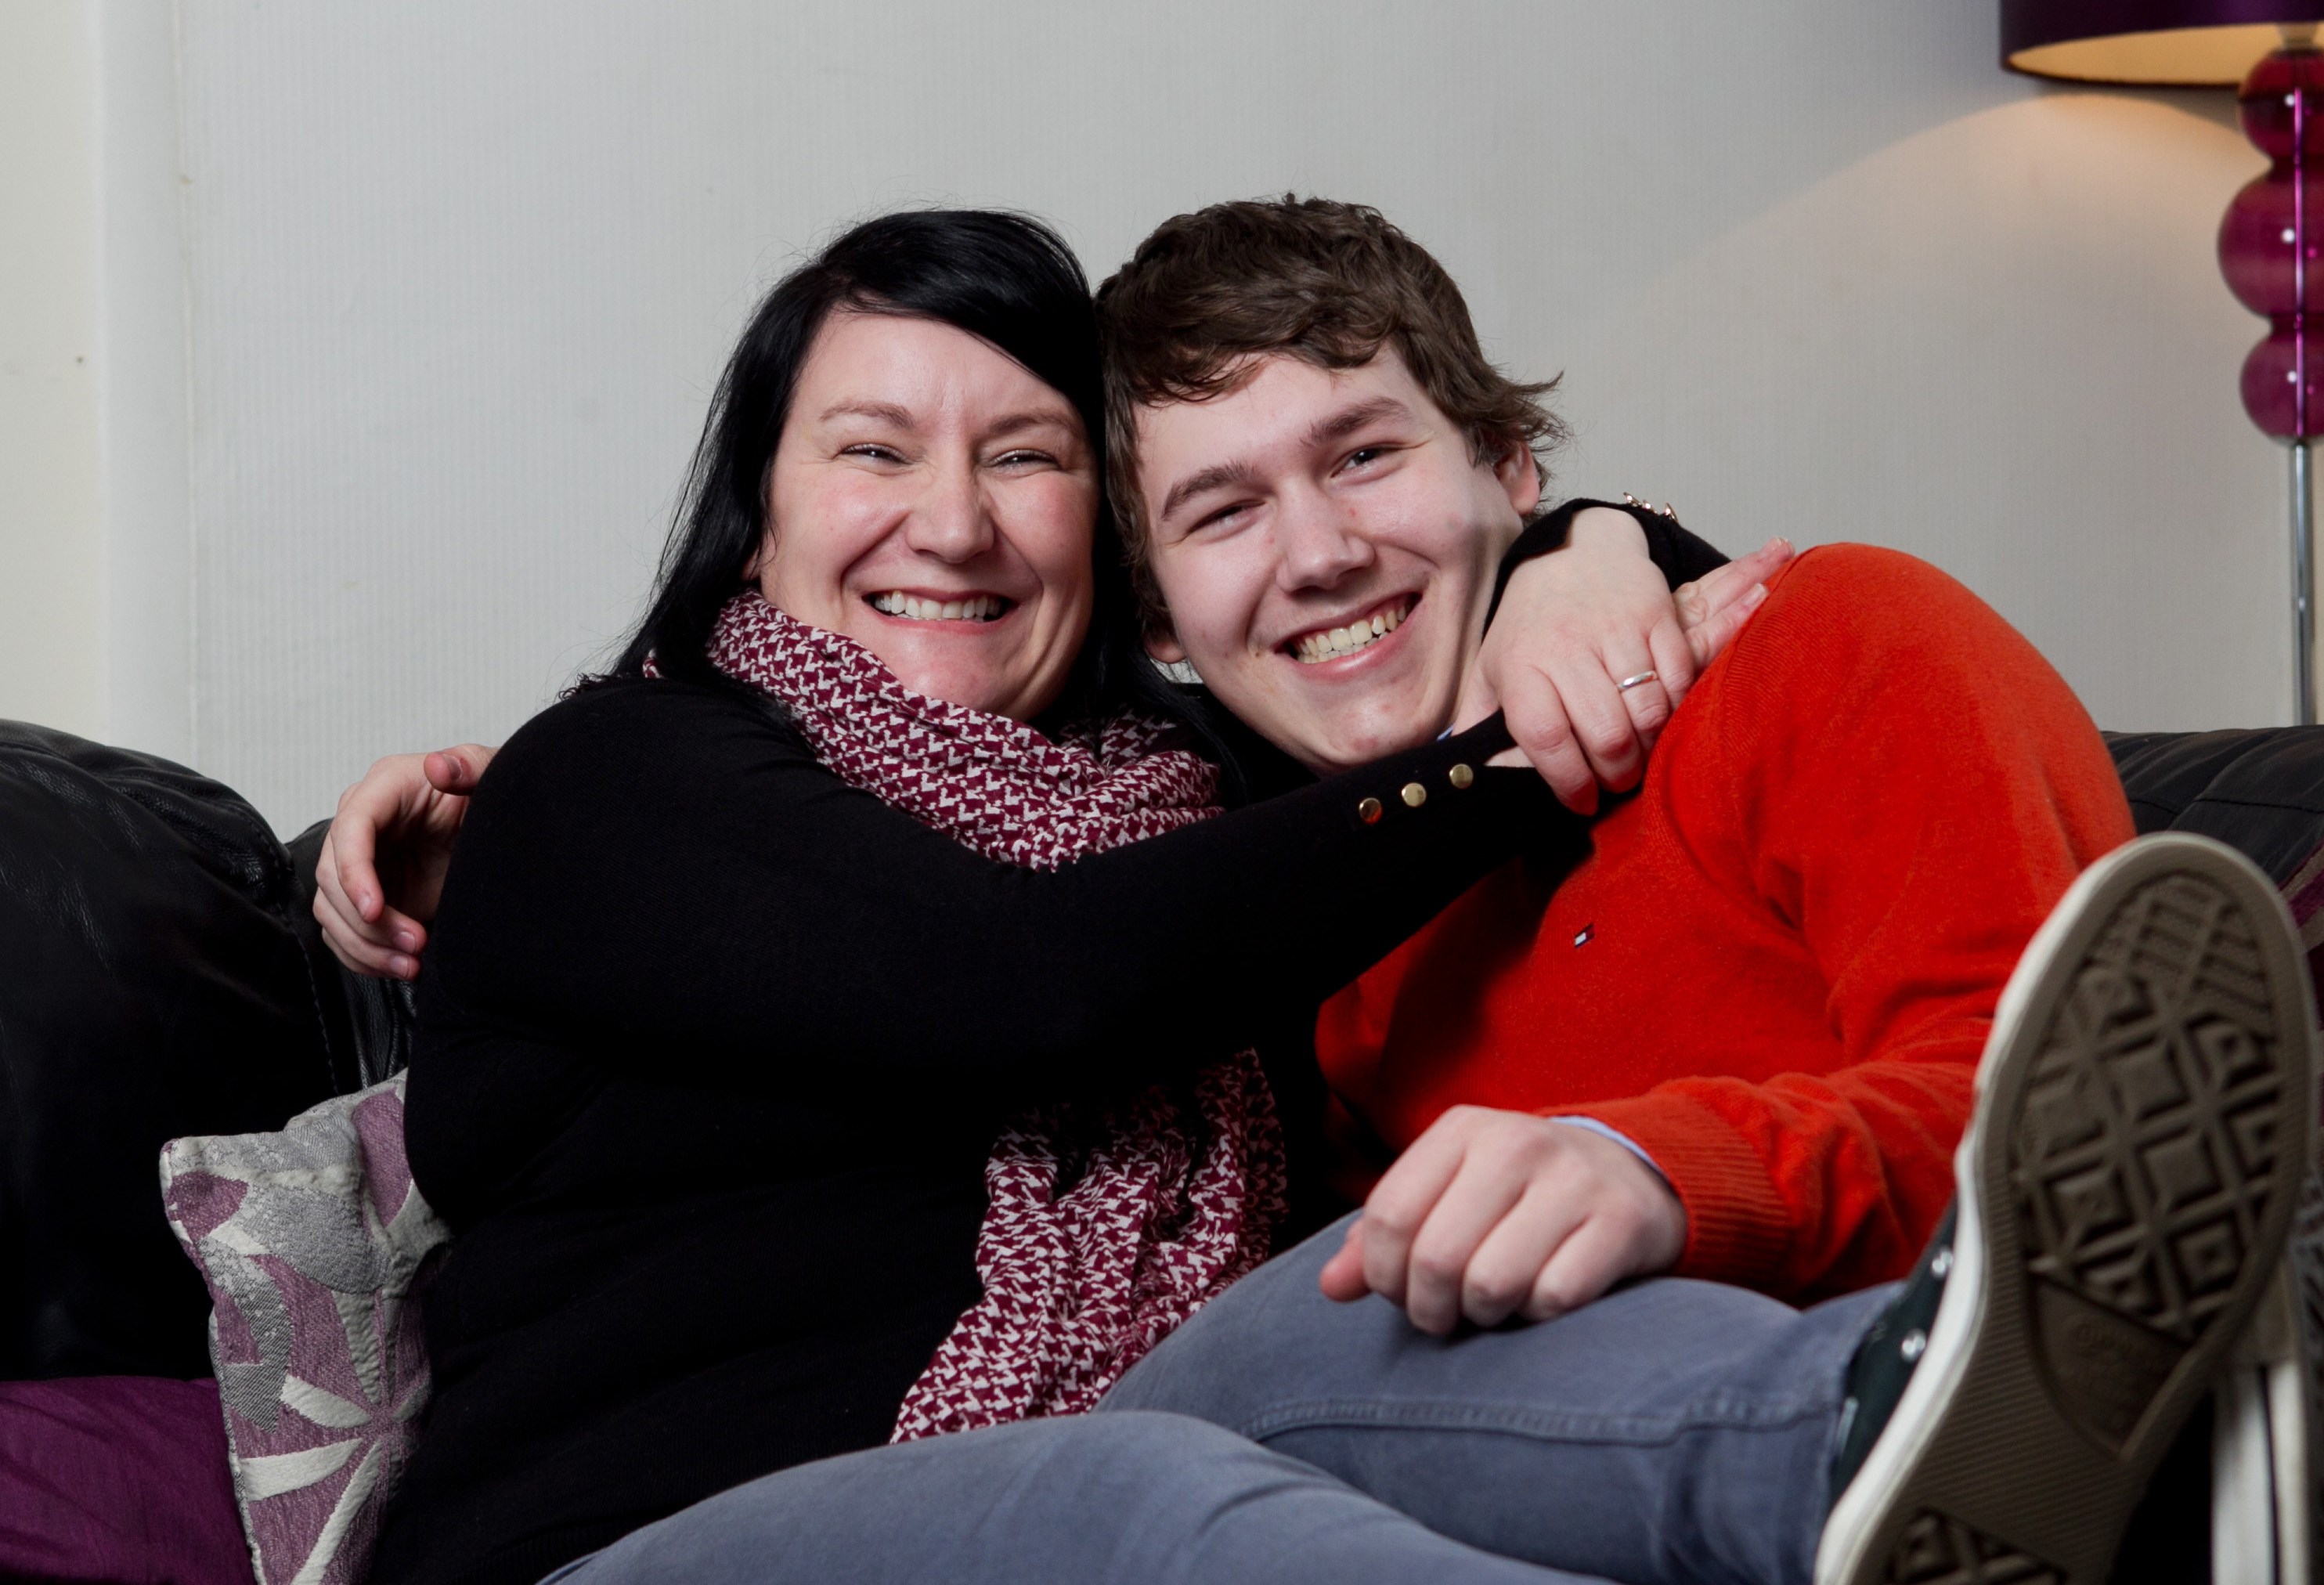 Sara Bell and her son Brandon (Andrew Cawley / DC Thomson)